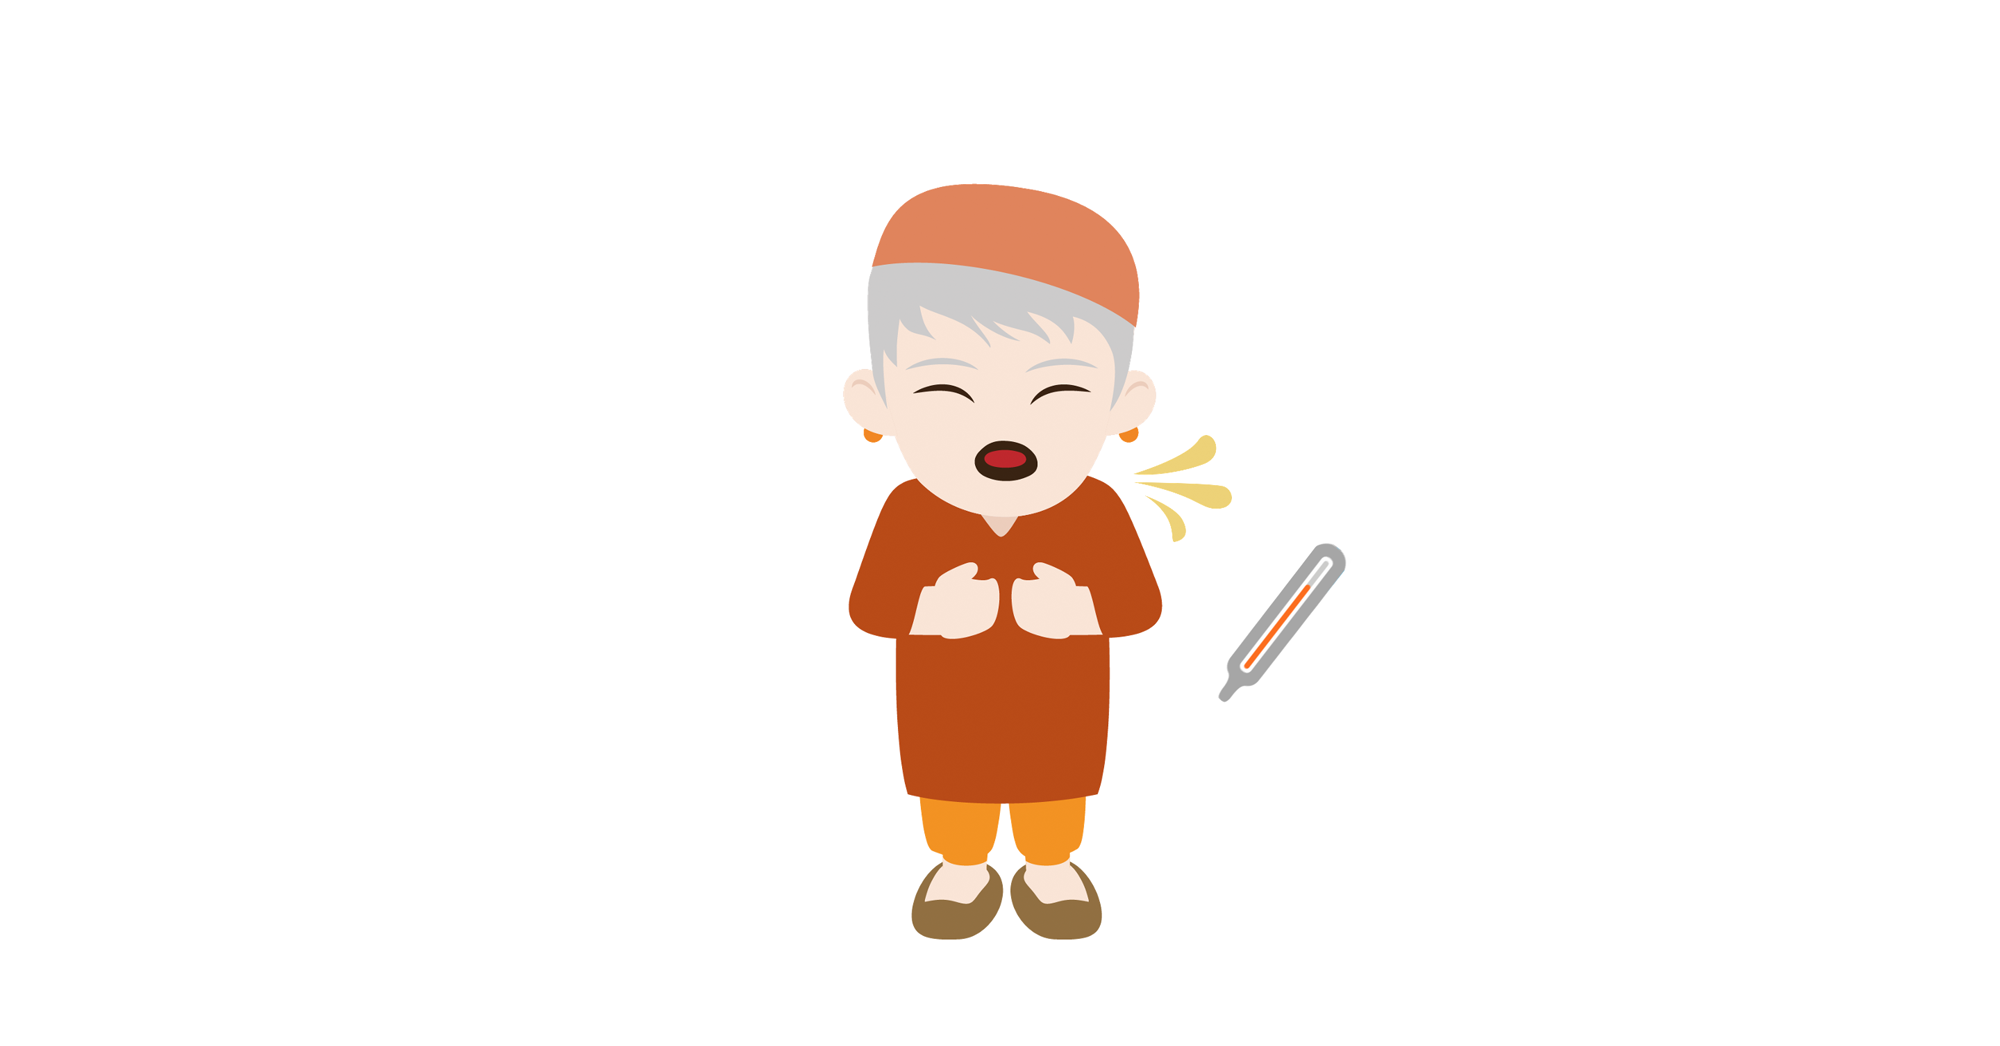 Older woman with grey hair and a hat, coughing, thermometer. Cartoon.